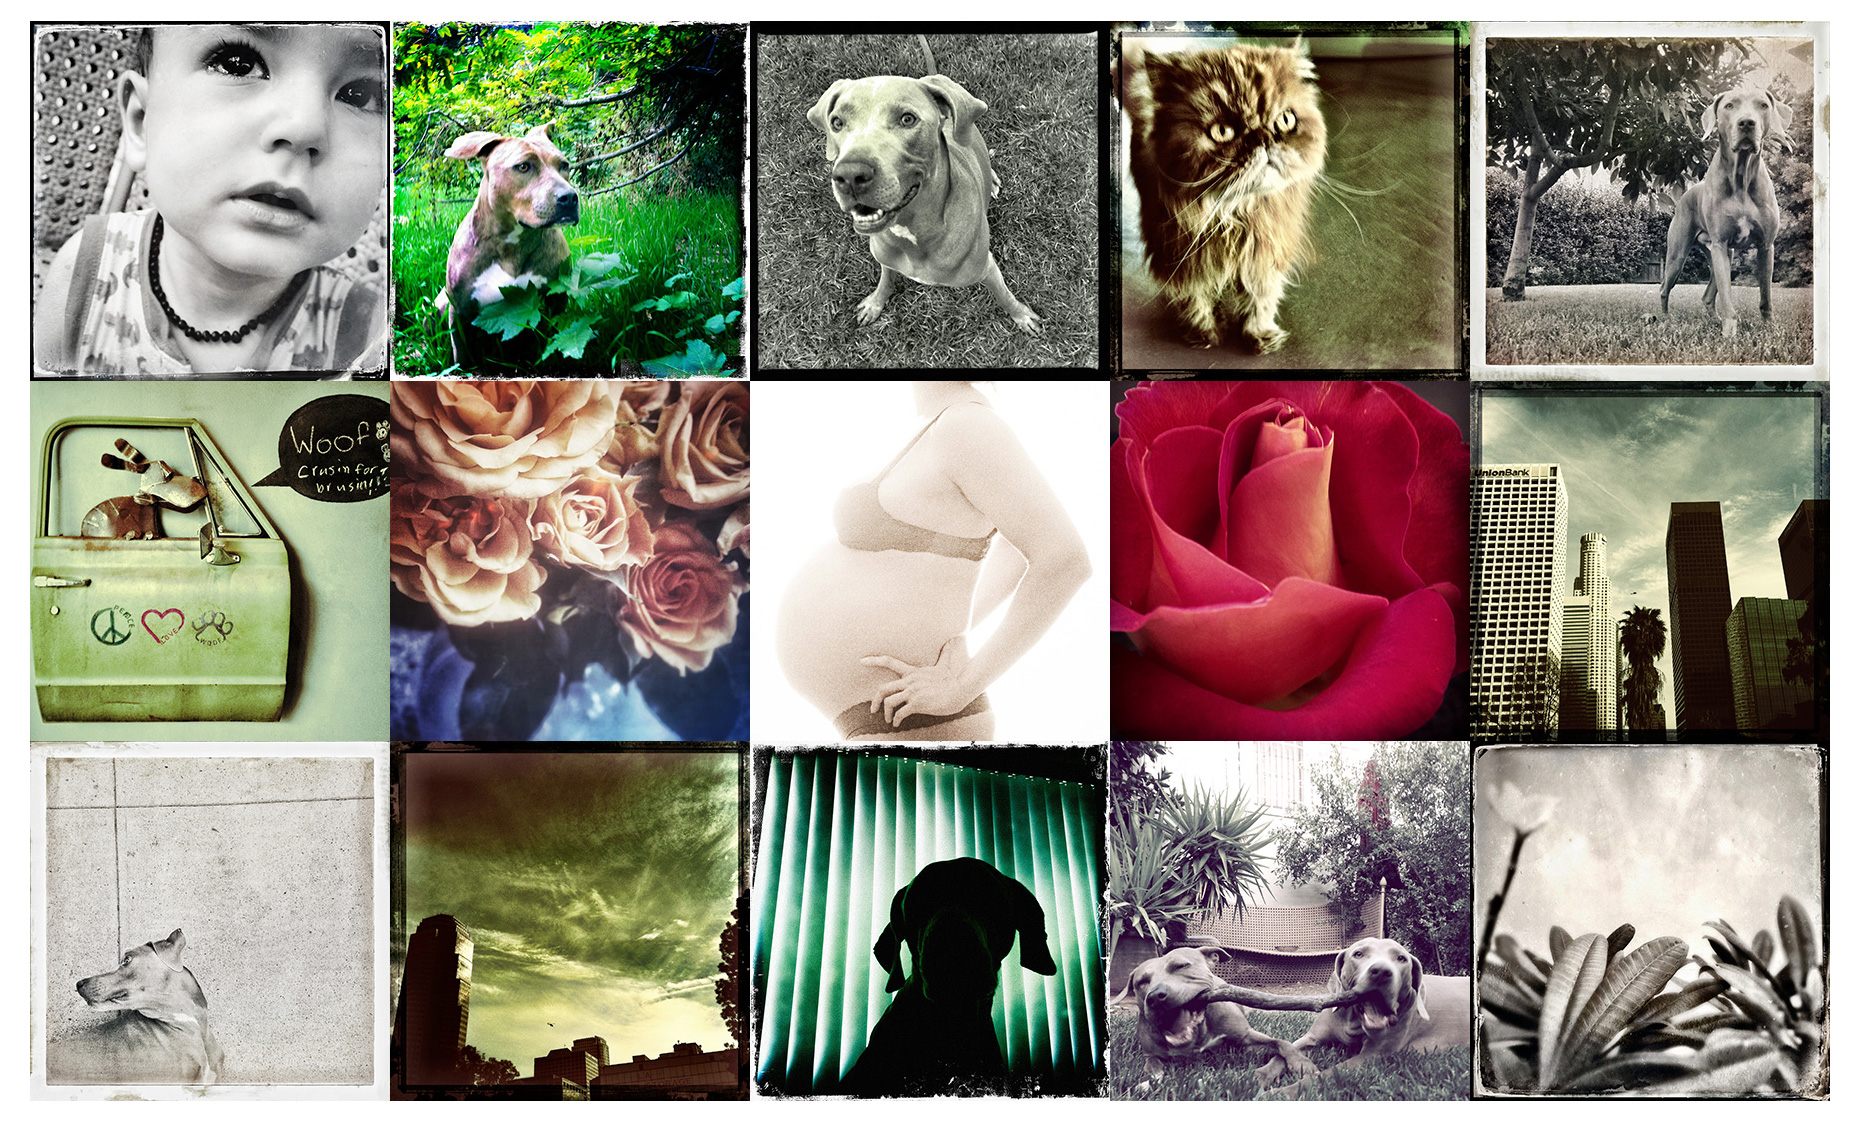 Los Angeles Dog Photography, Michael Brian, iphone photography, iPhoneography